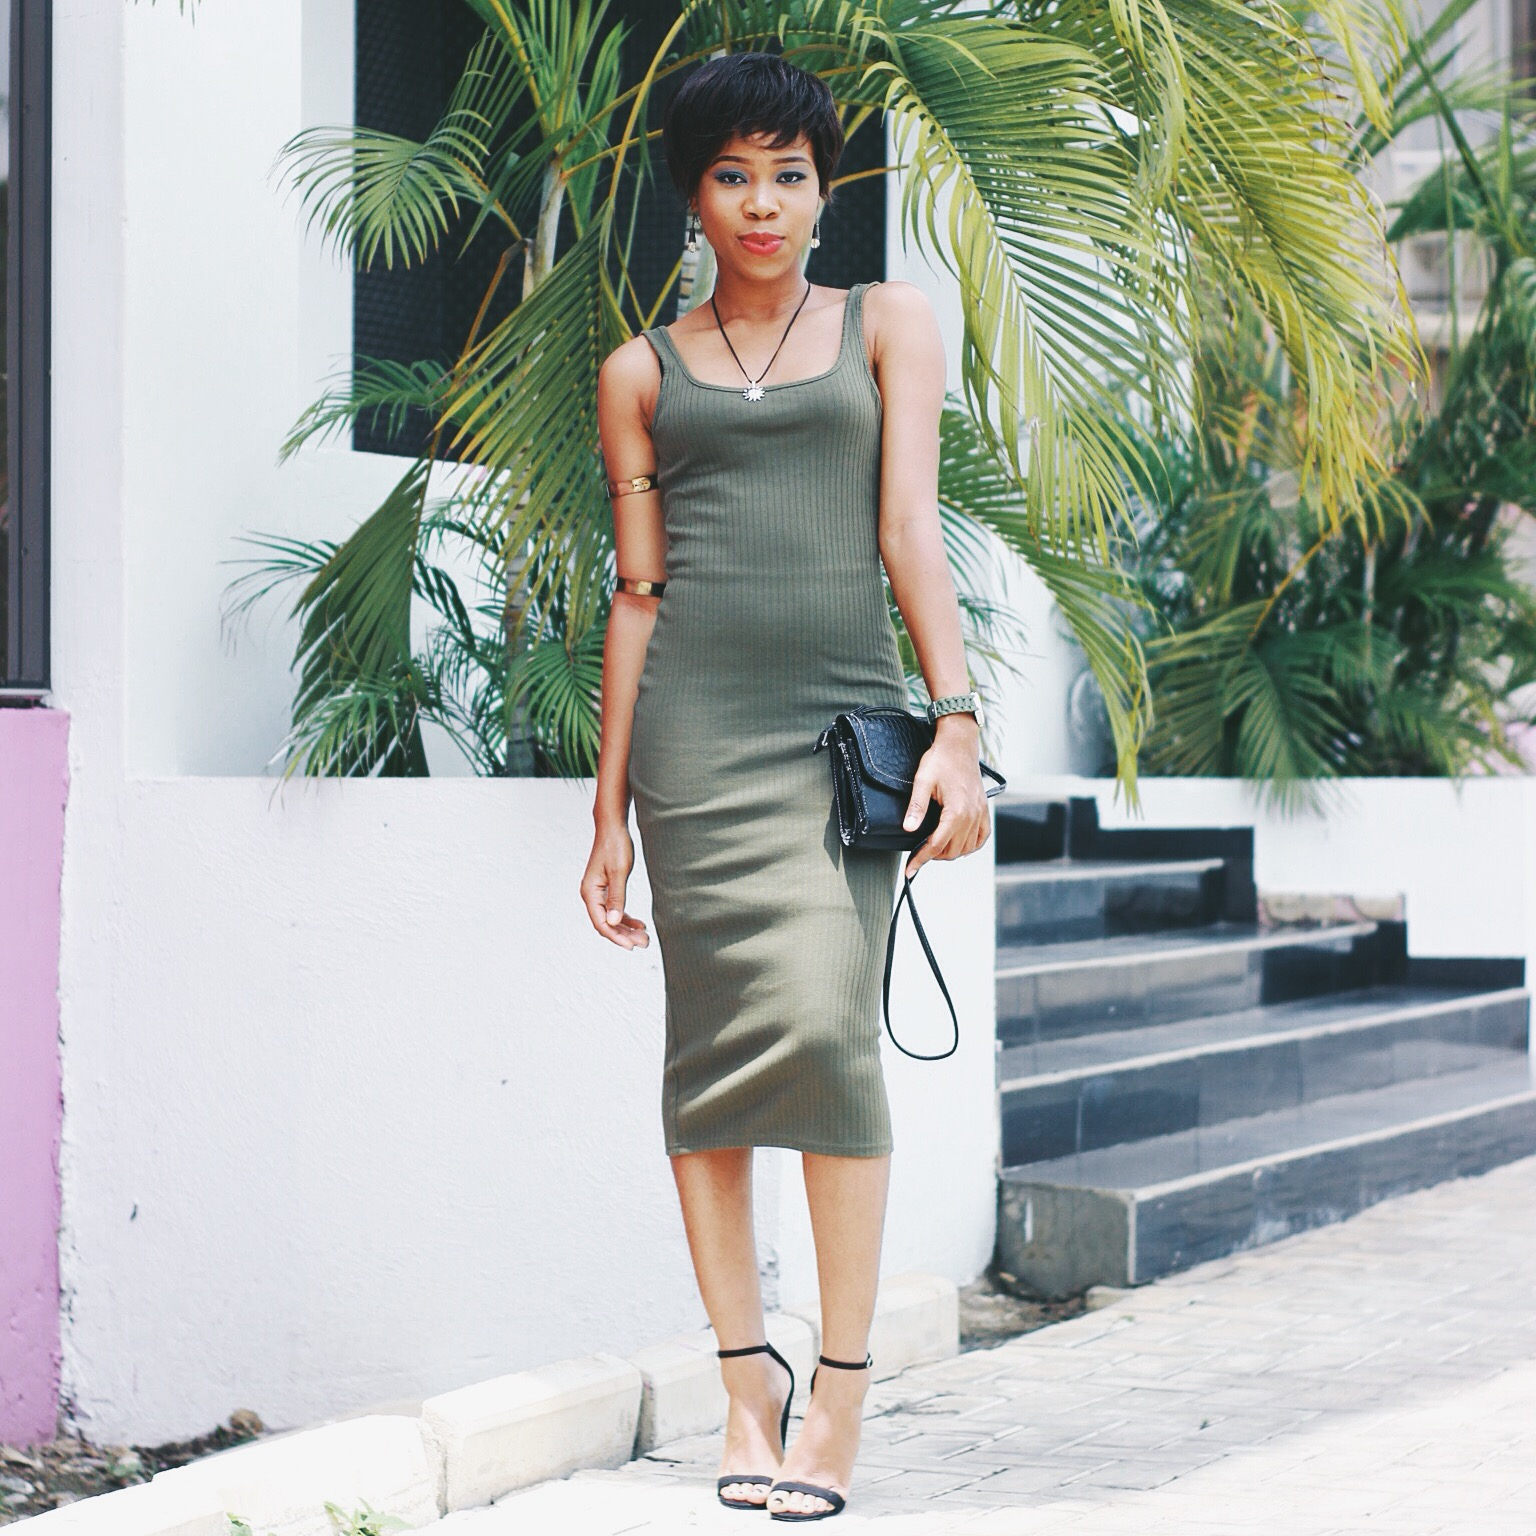 WEARING BODYCON/MIDI GOWN